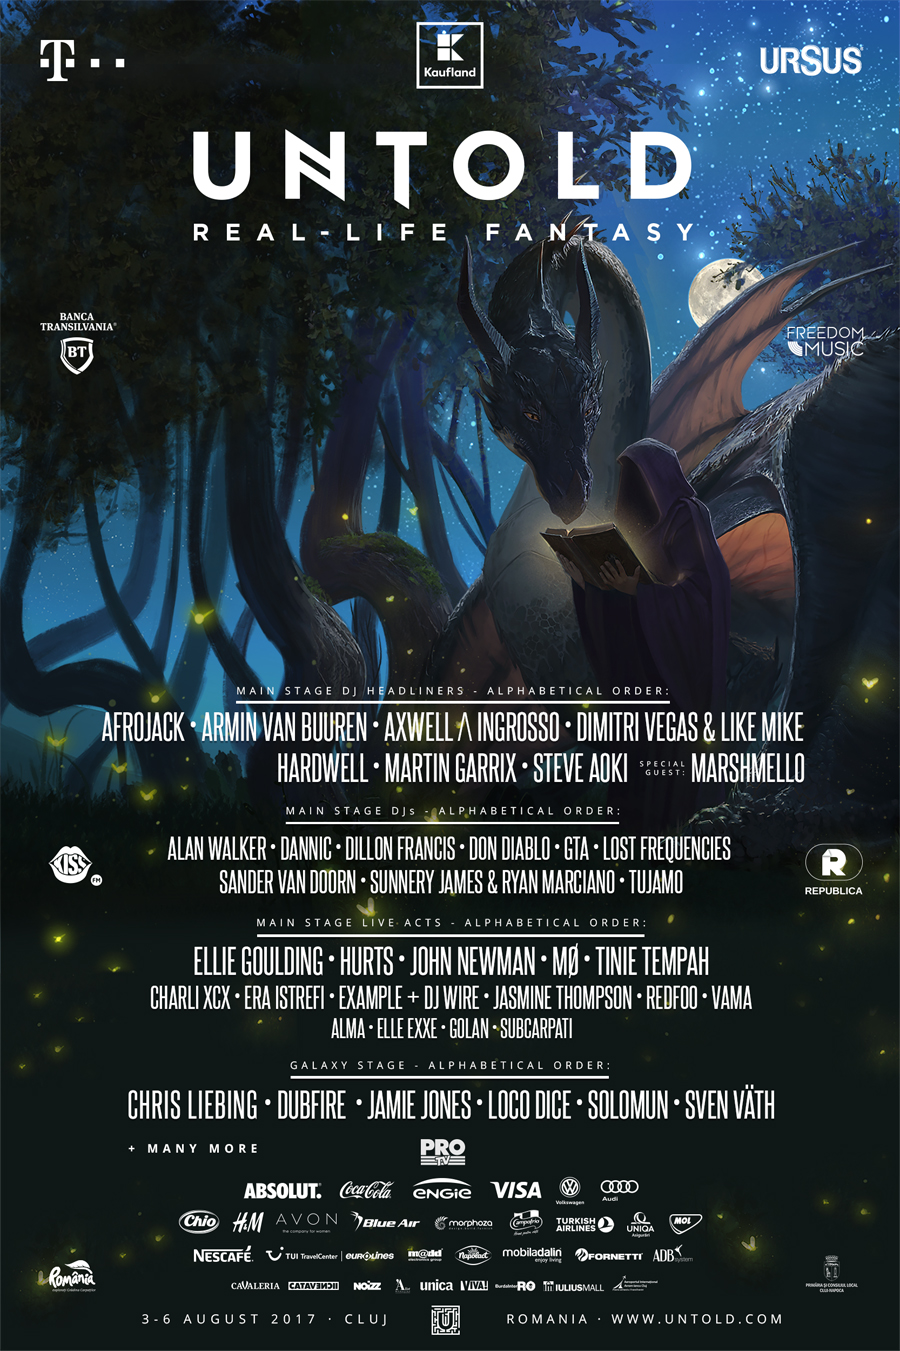 untold 2017 full lineup